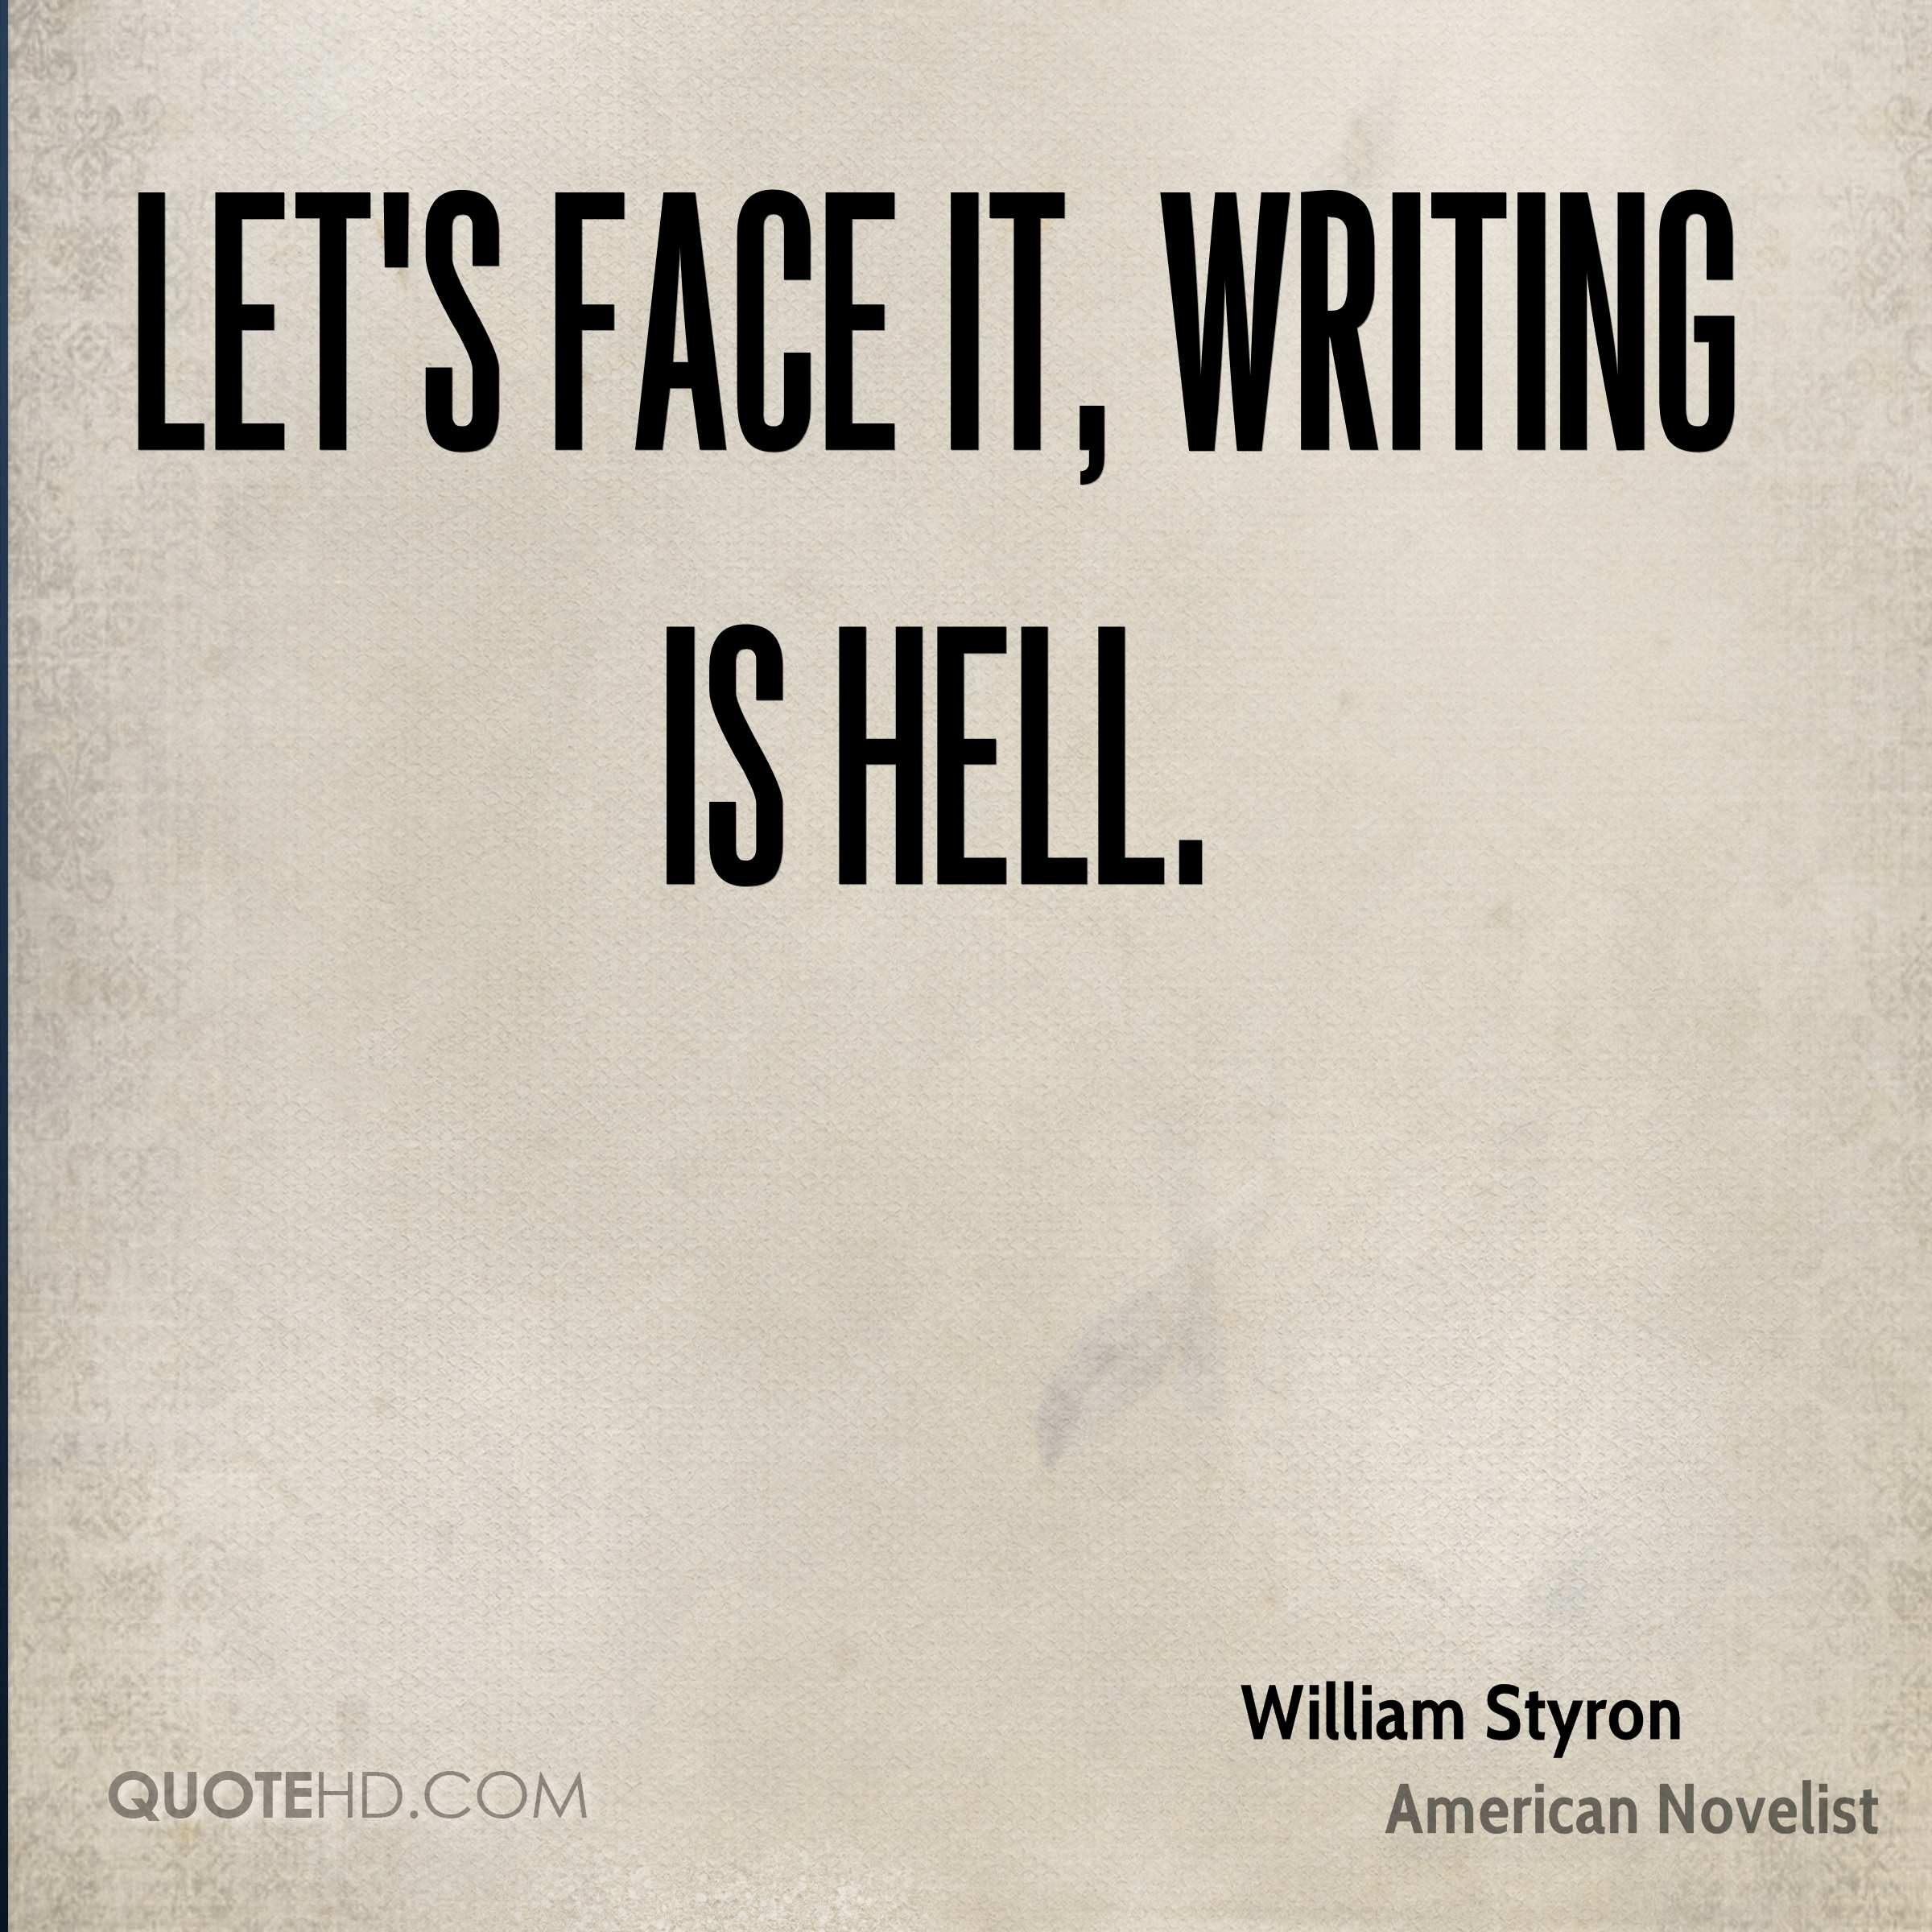 Let's face it, writing is hell.